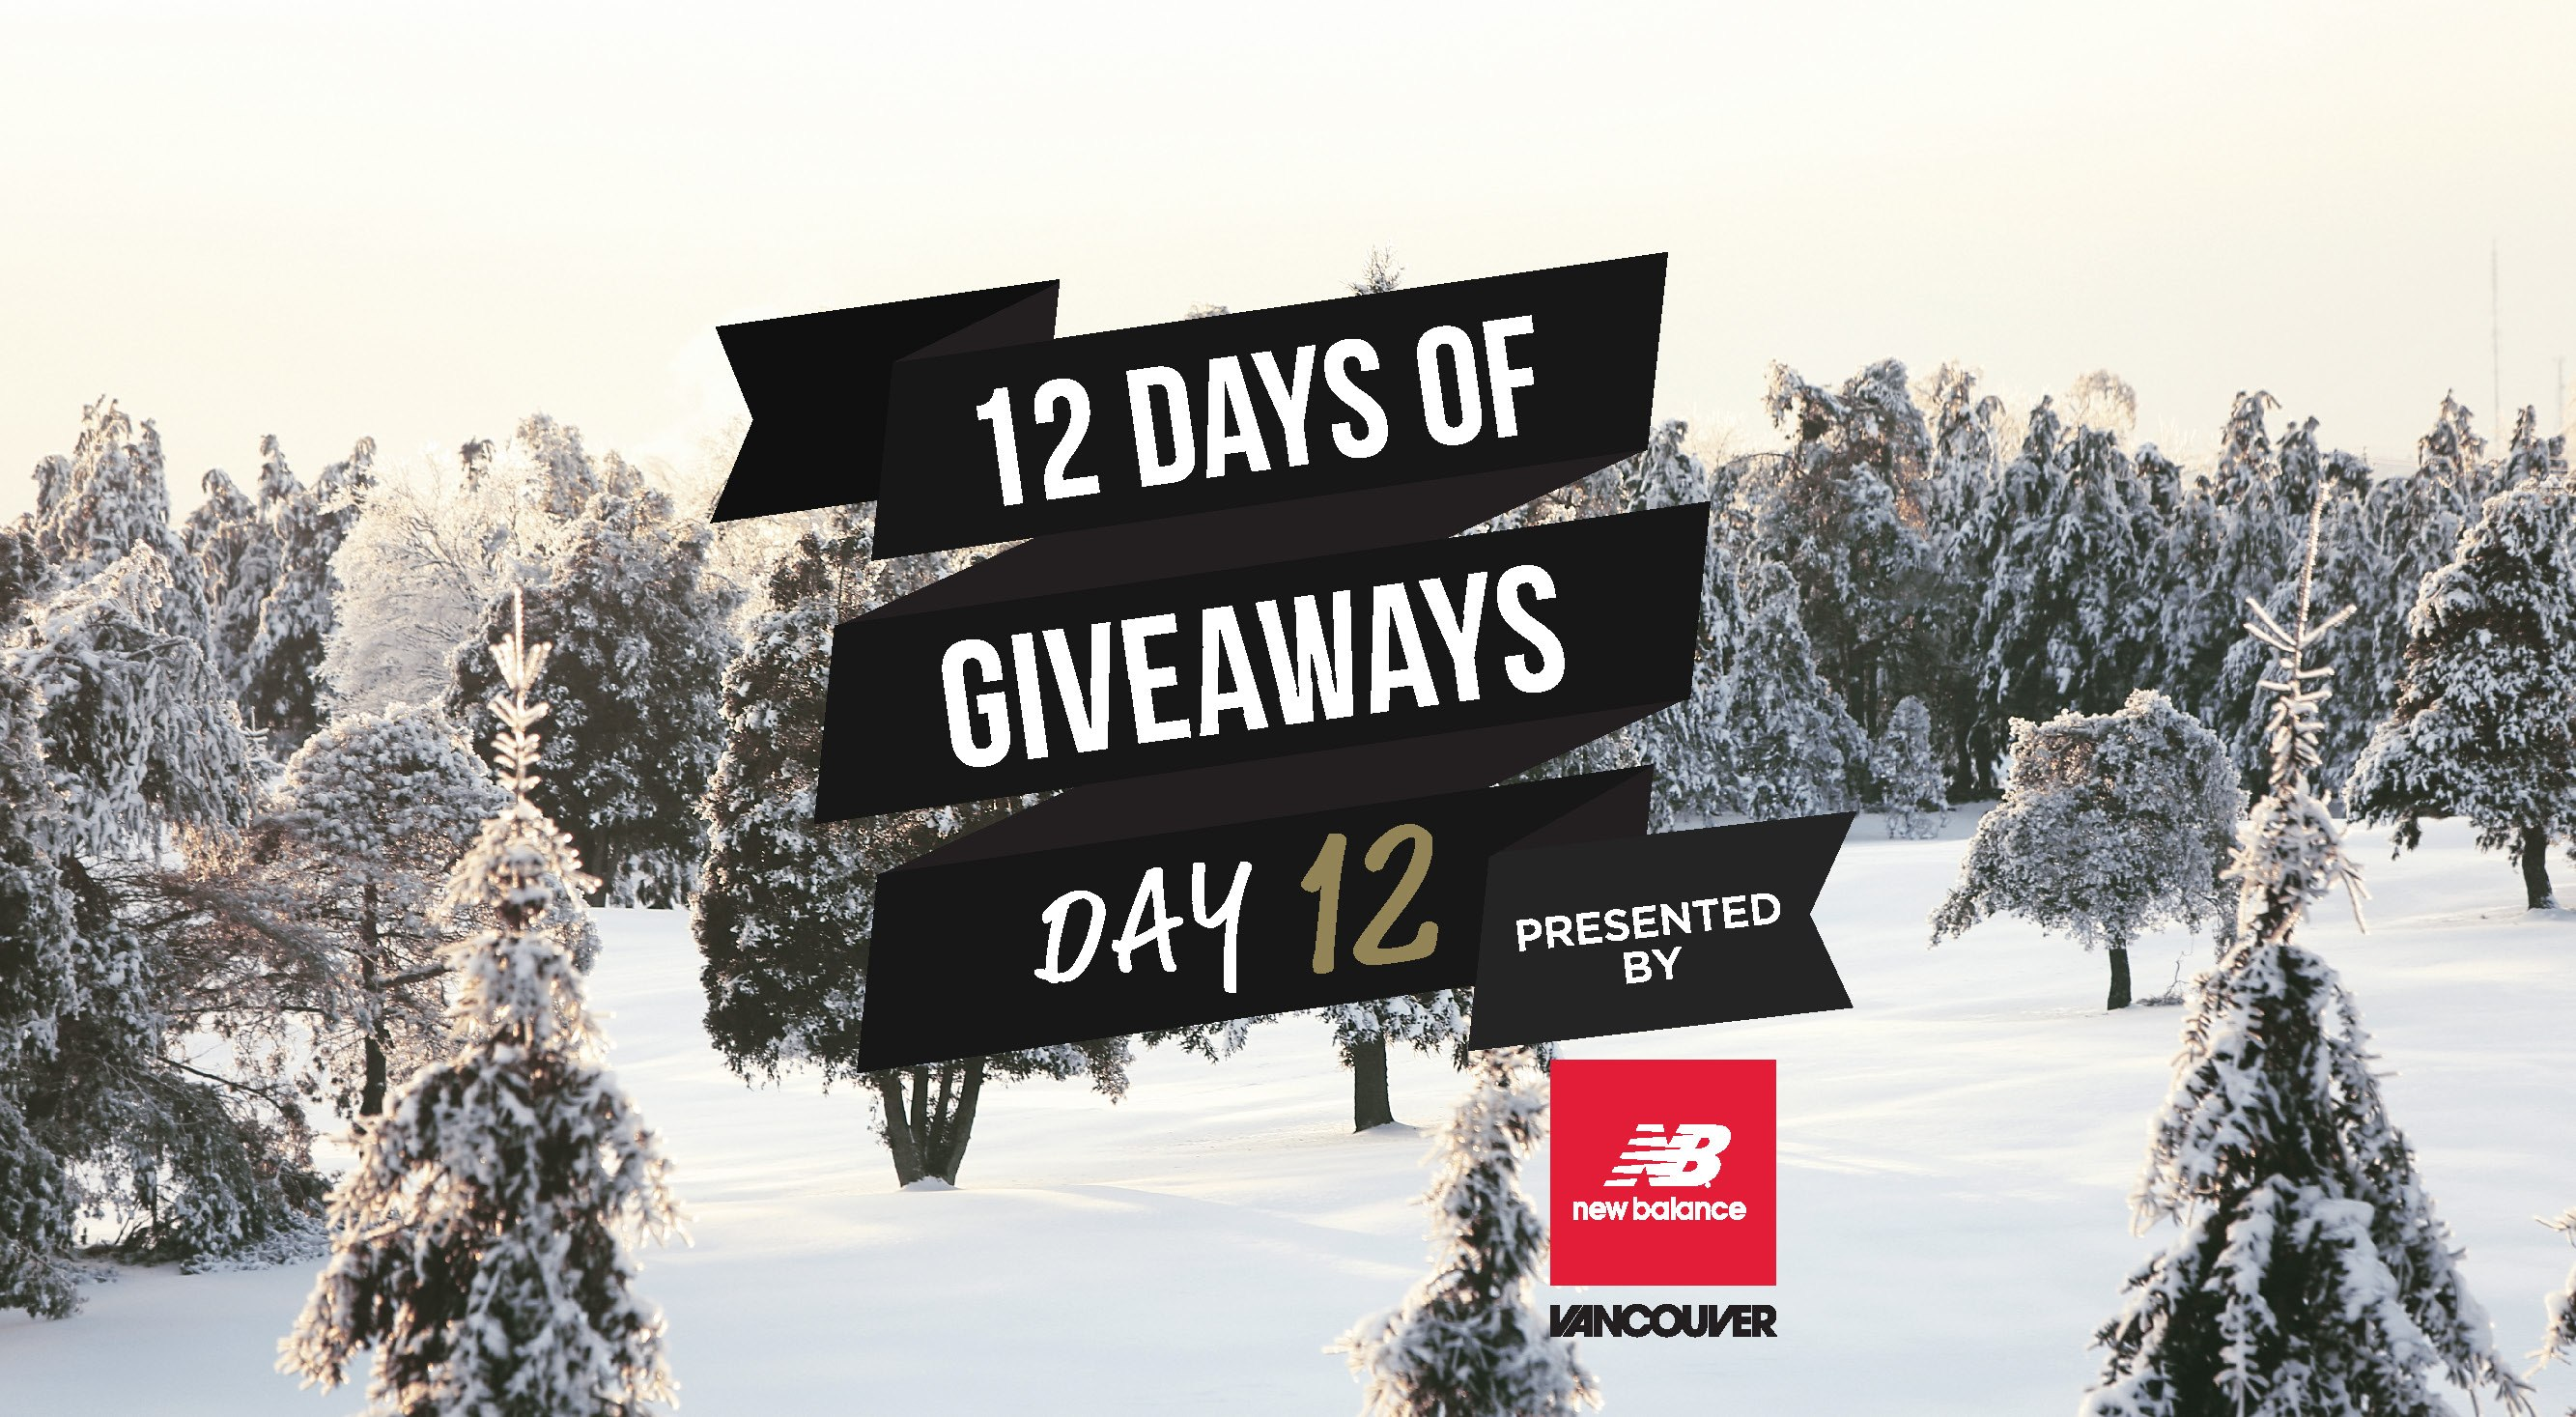 12 Days of Giveaways: Get $300 worth of Cactus Club deliciousness